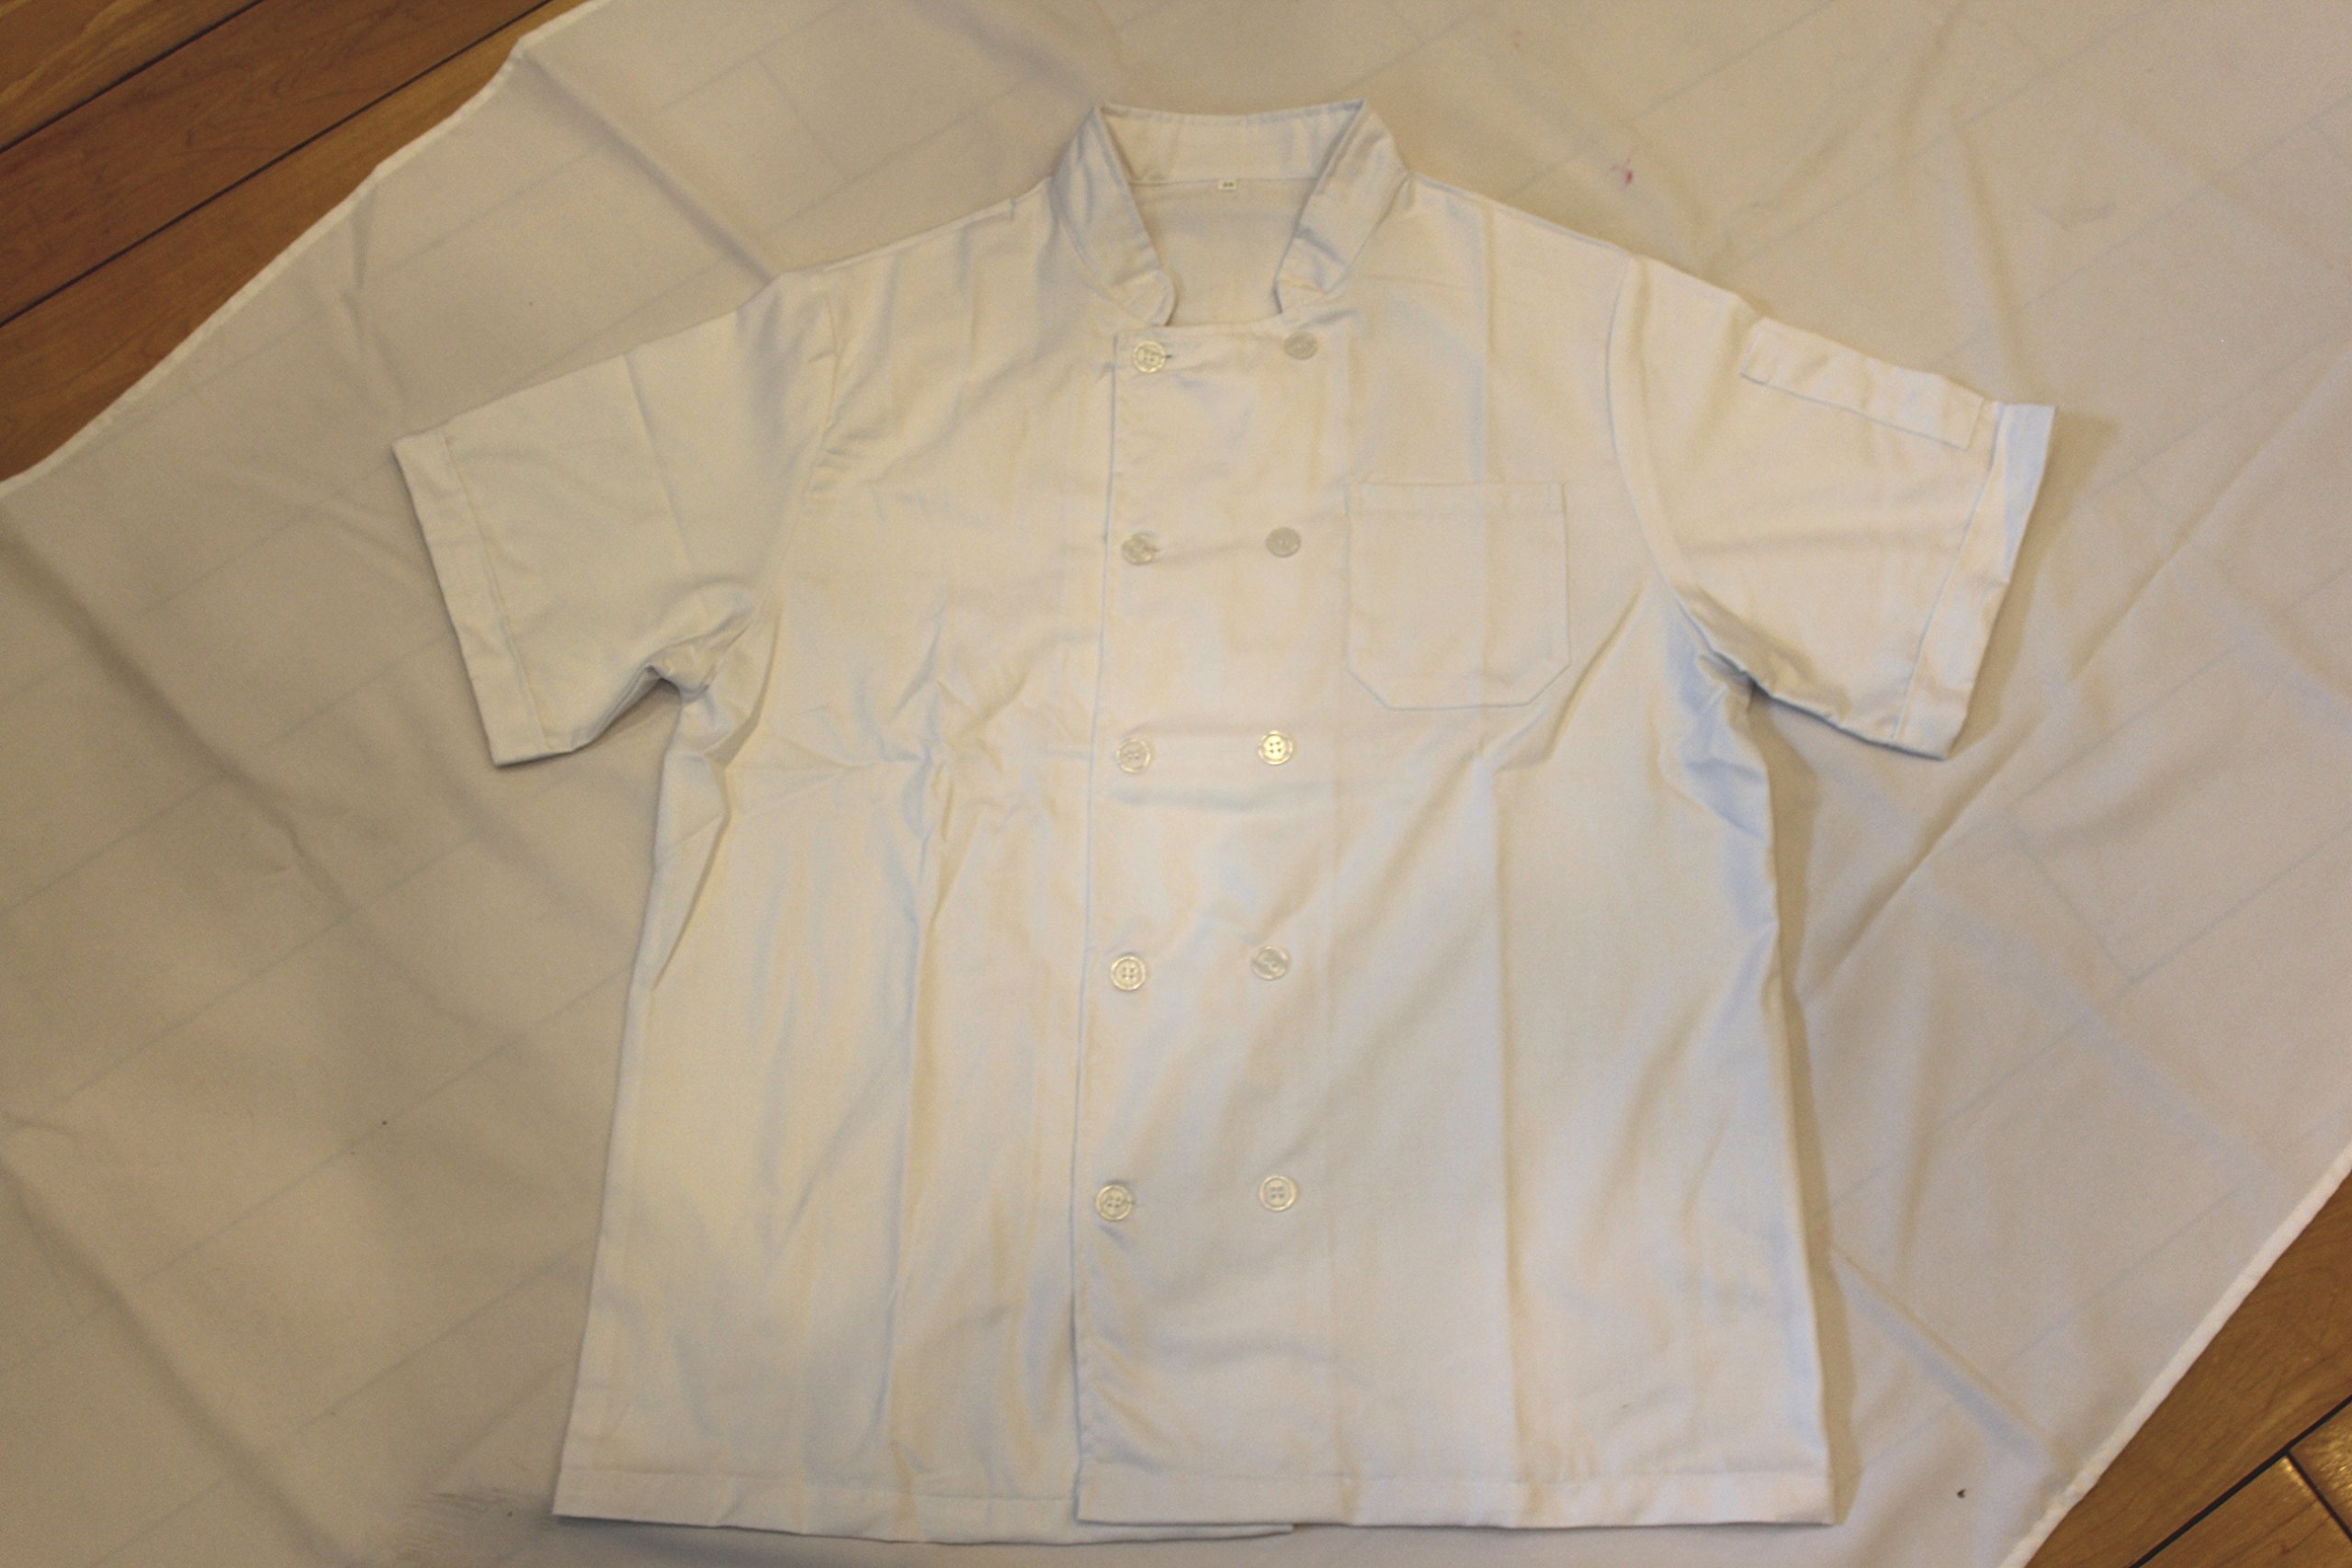 All White Unisex Chef Jacket (Short Sleeves) Size 36, Small